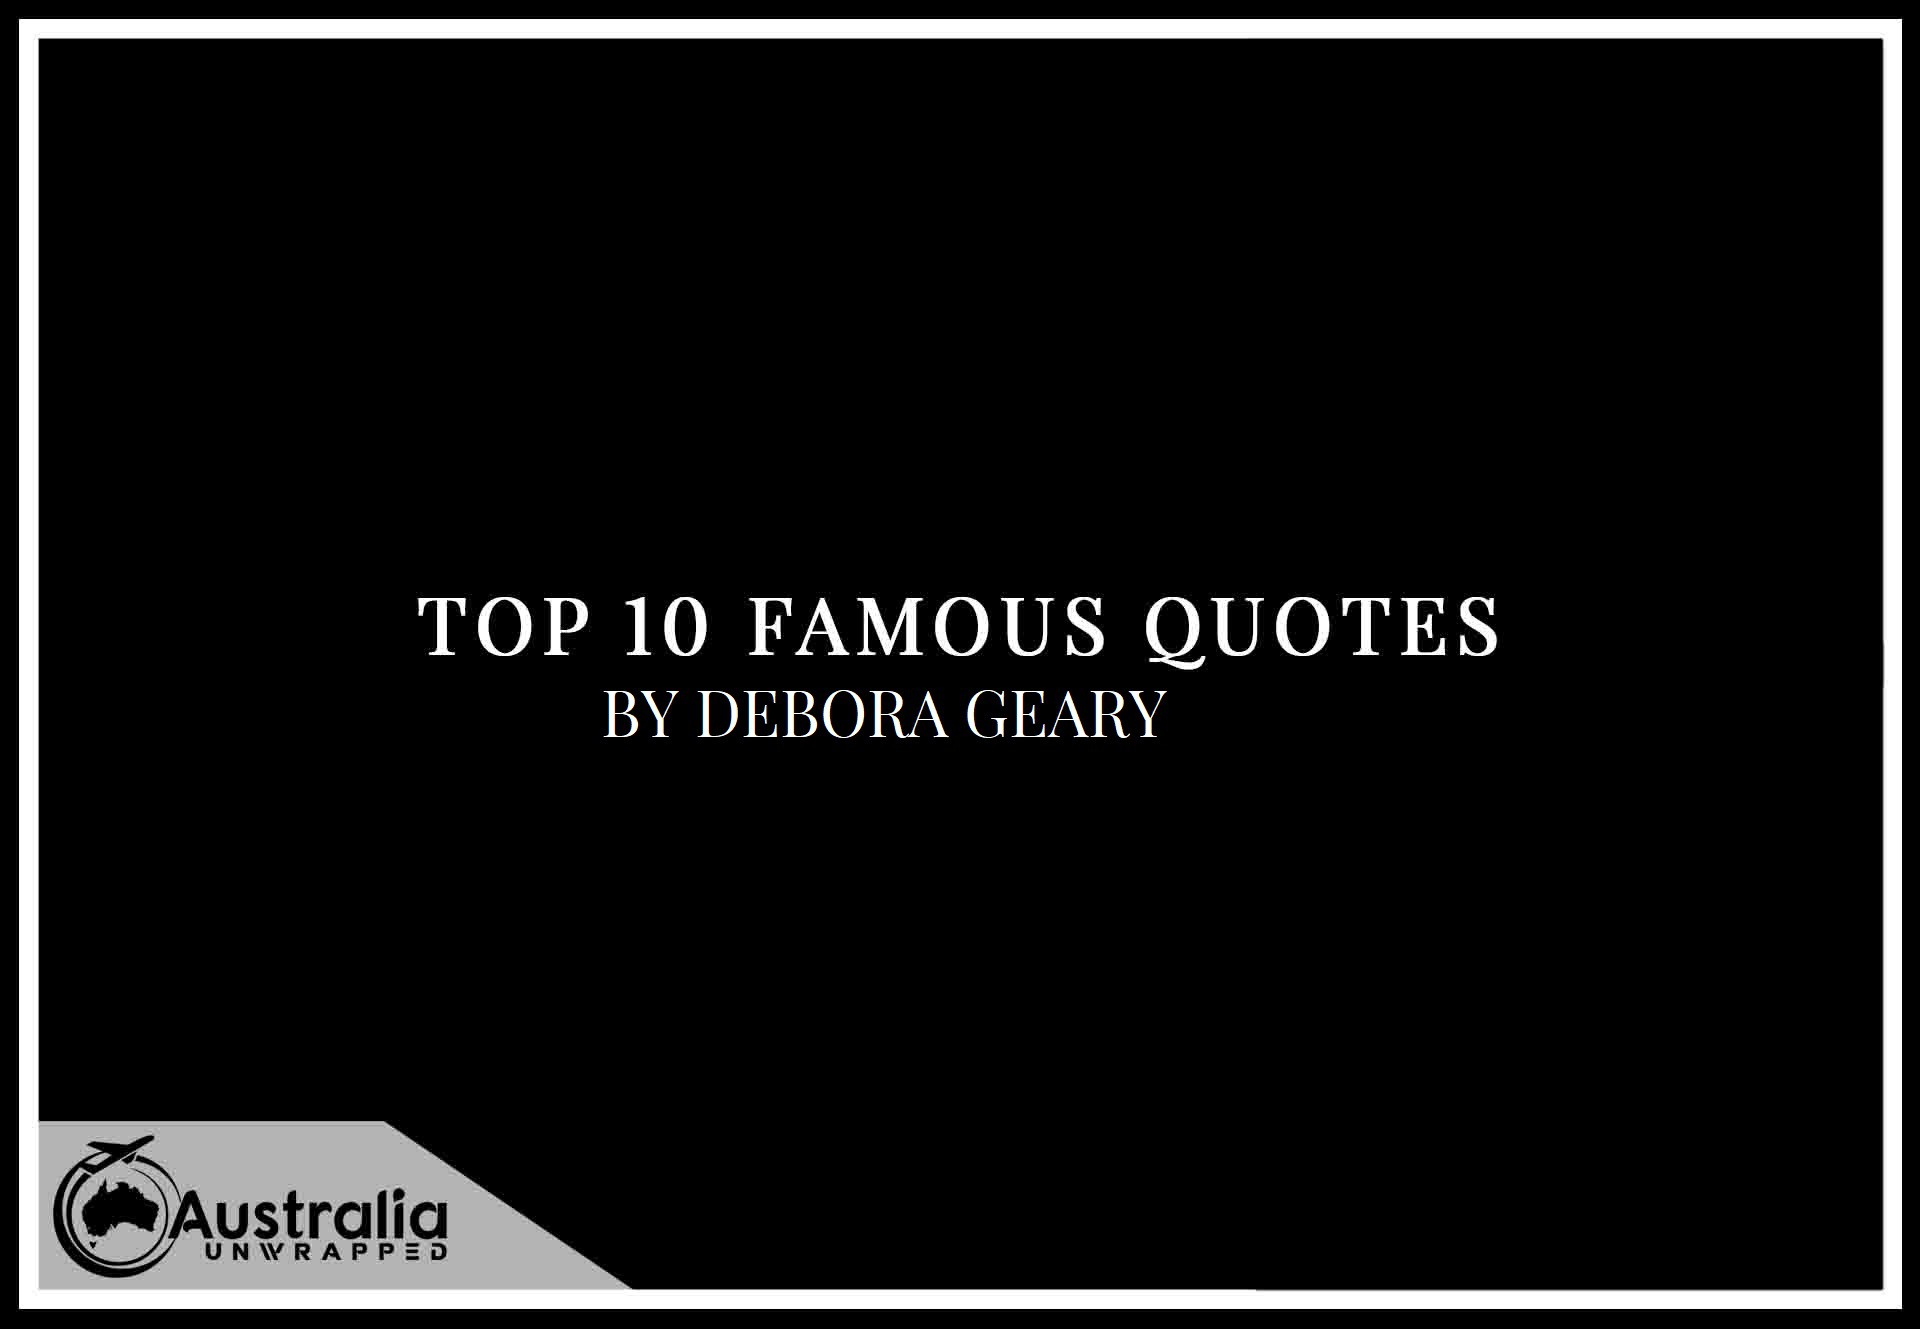 Top 10 Famous Quotes by Author Debora Geary